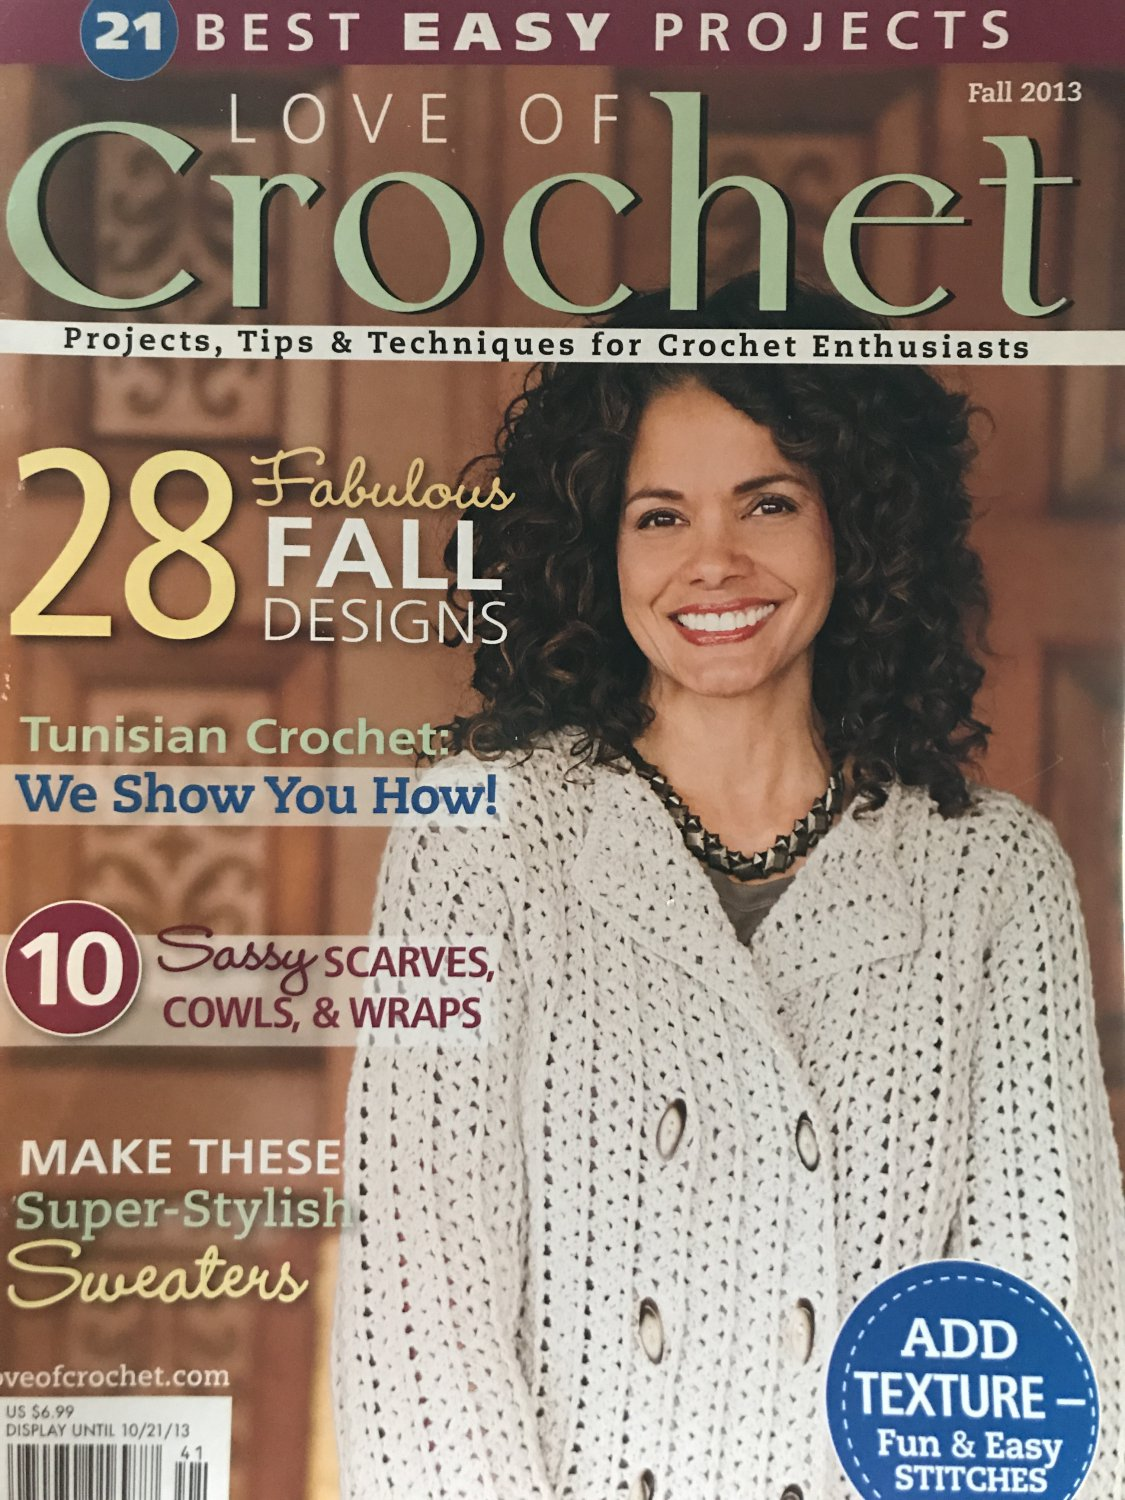 Love of Crochet Fall of  2013 Crochet Patterns Sweaters, Scarves, Cowls, Wraps Tunision Stitch